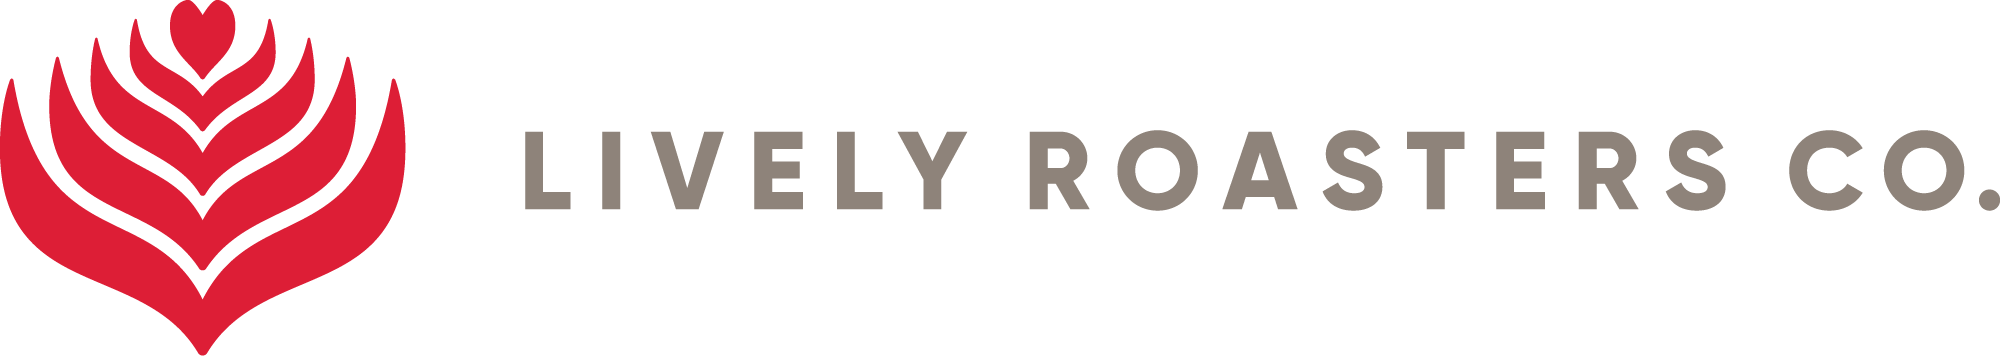 Lively Roasters